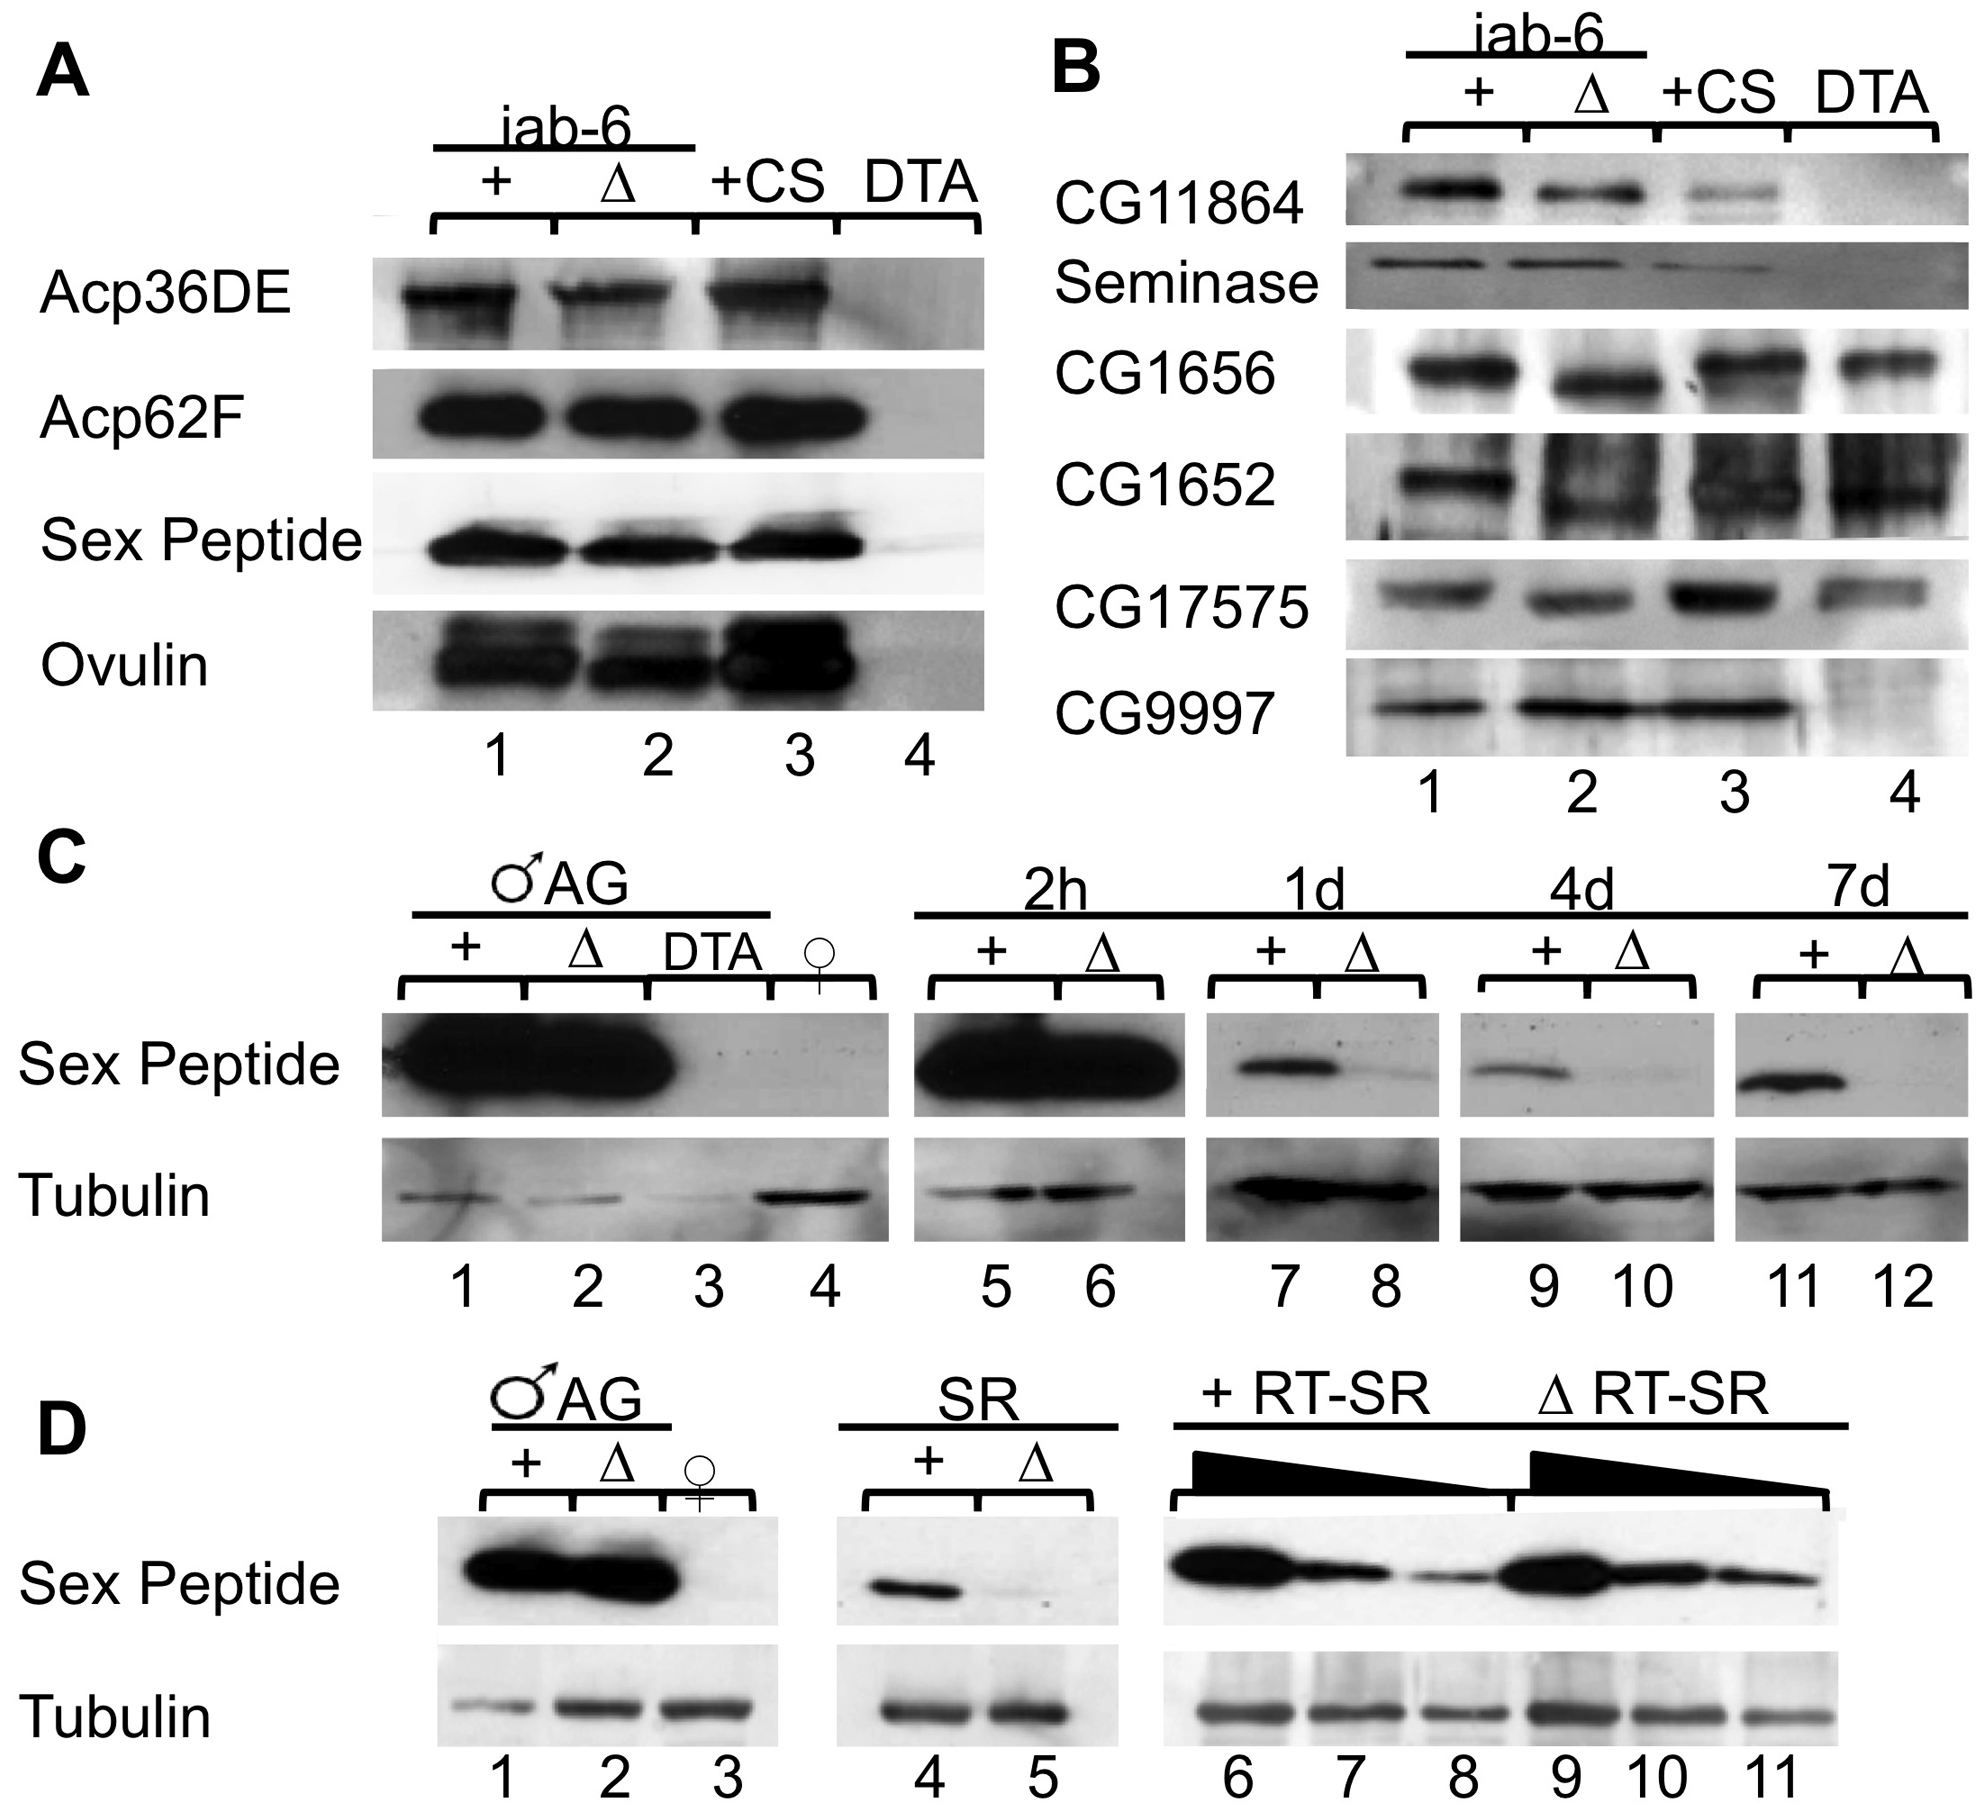 Seminal fluid proteins in <i>iab-6<sup>cocu</sup></i> and control males, and their mates.